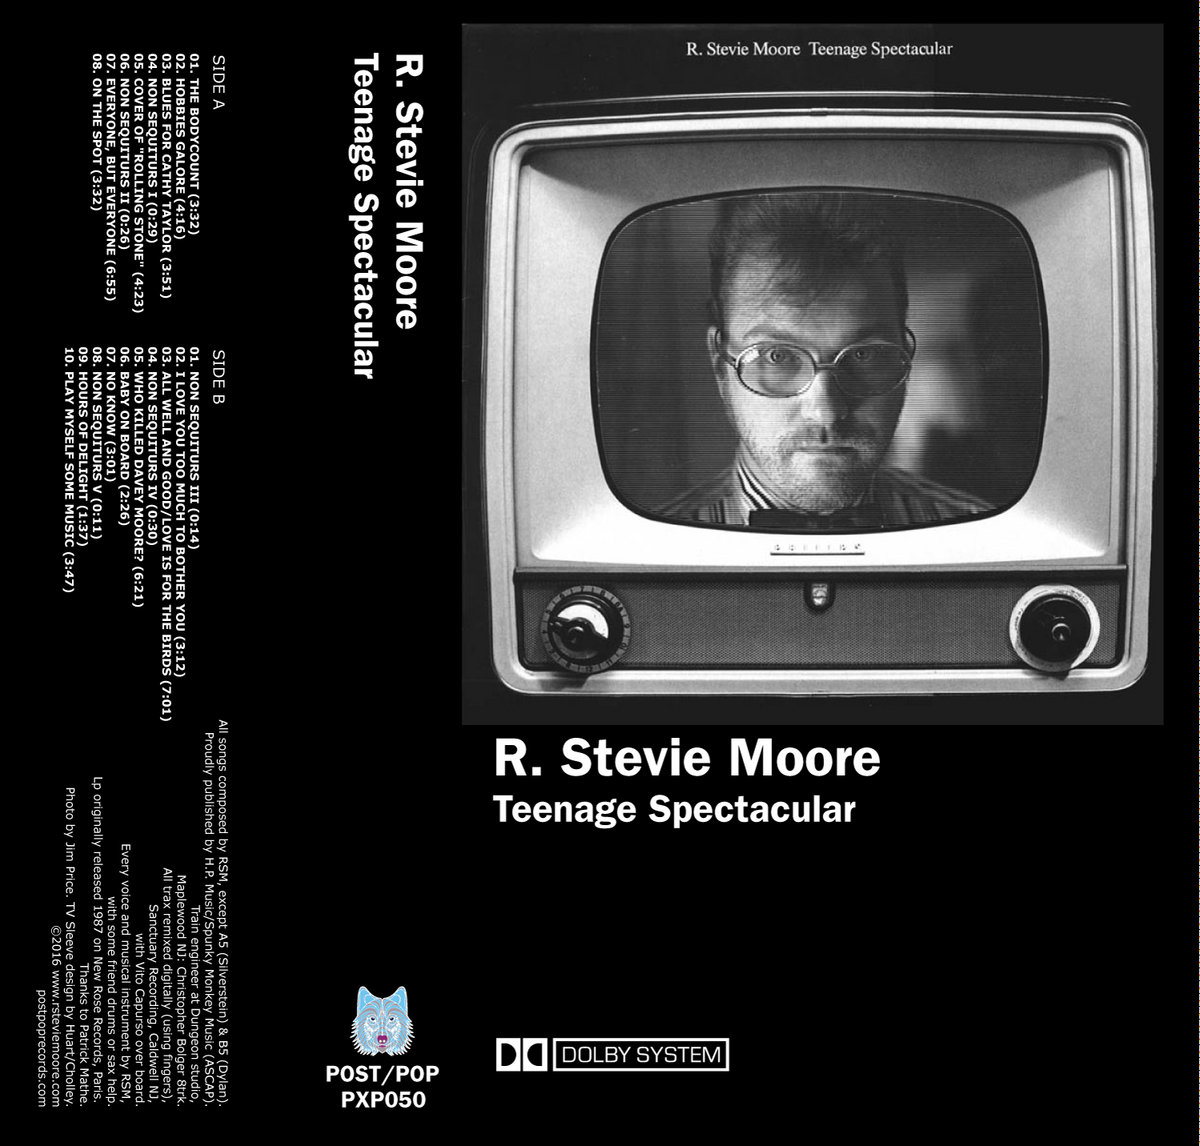 R. STEVIE MOORE - TEENAGE SPECTACULAR (PXP050)